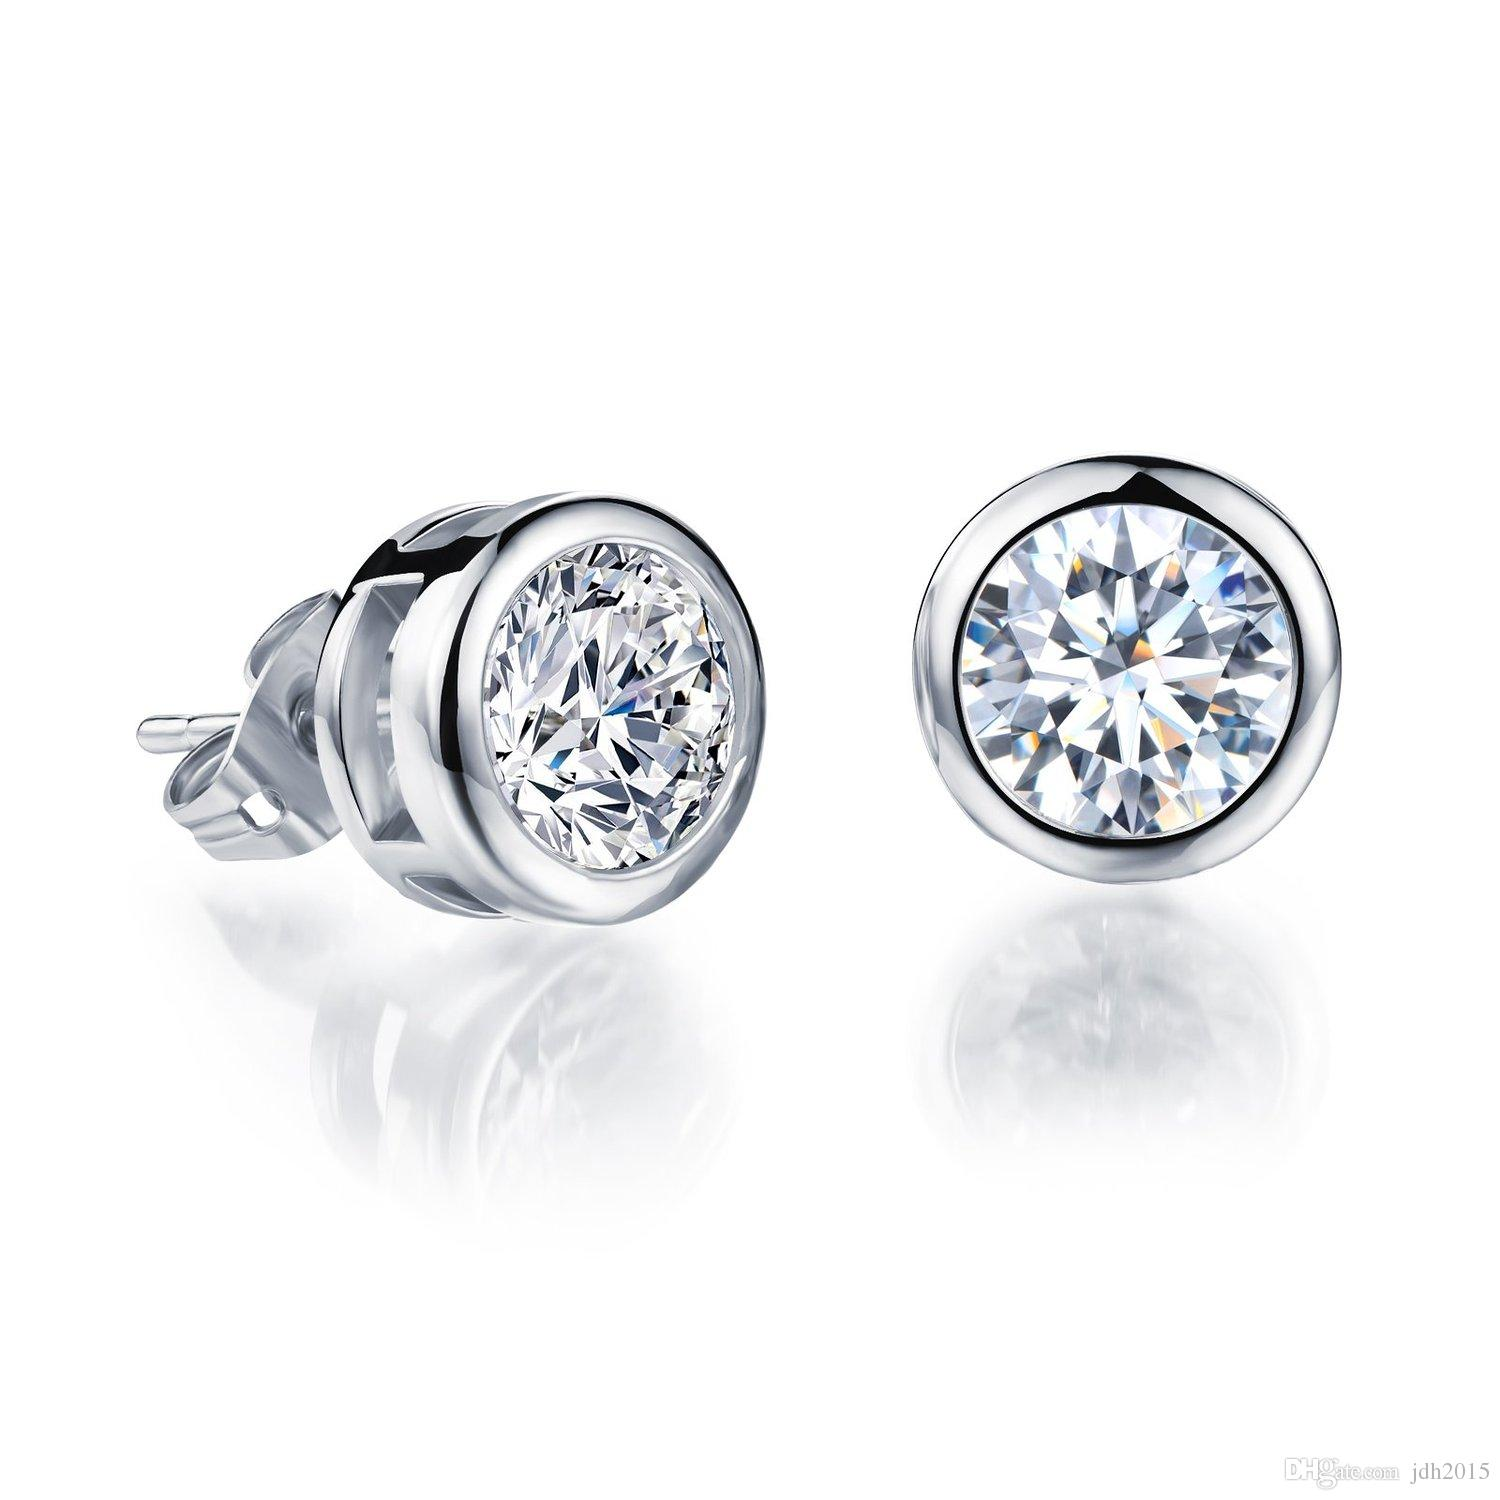 Platinum Plated or Gold Plated Round Cut Cubic Zirconia Crystal Bezel Set Stud Earrings 5mm/6mm/10mm